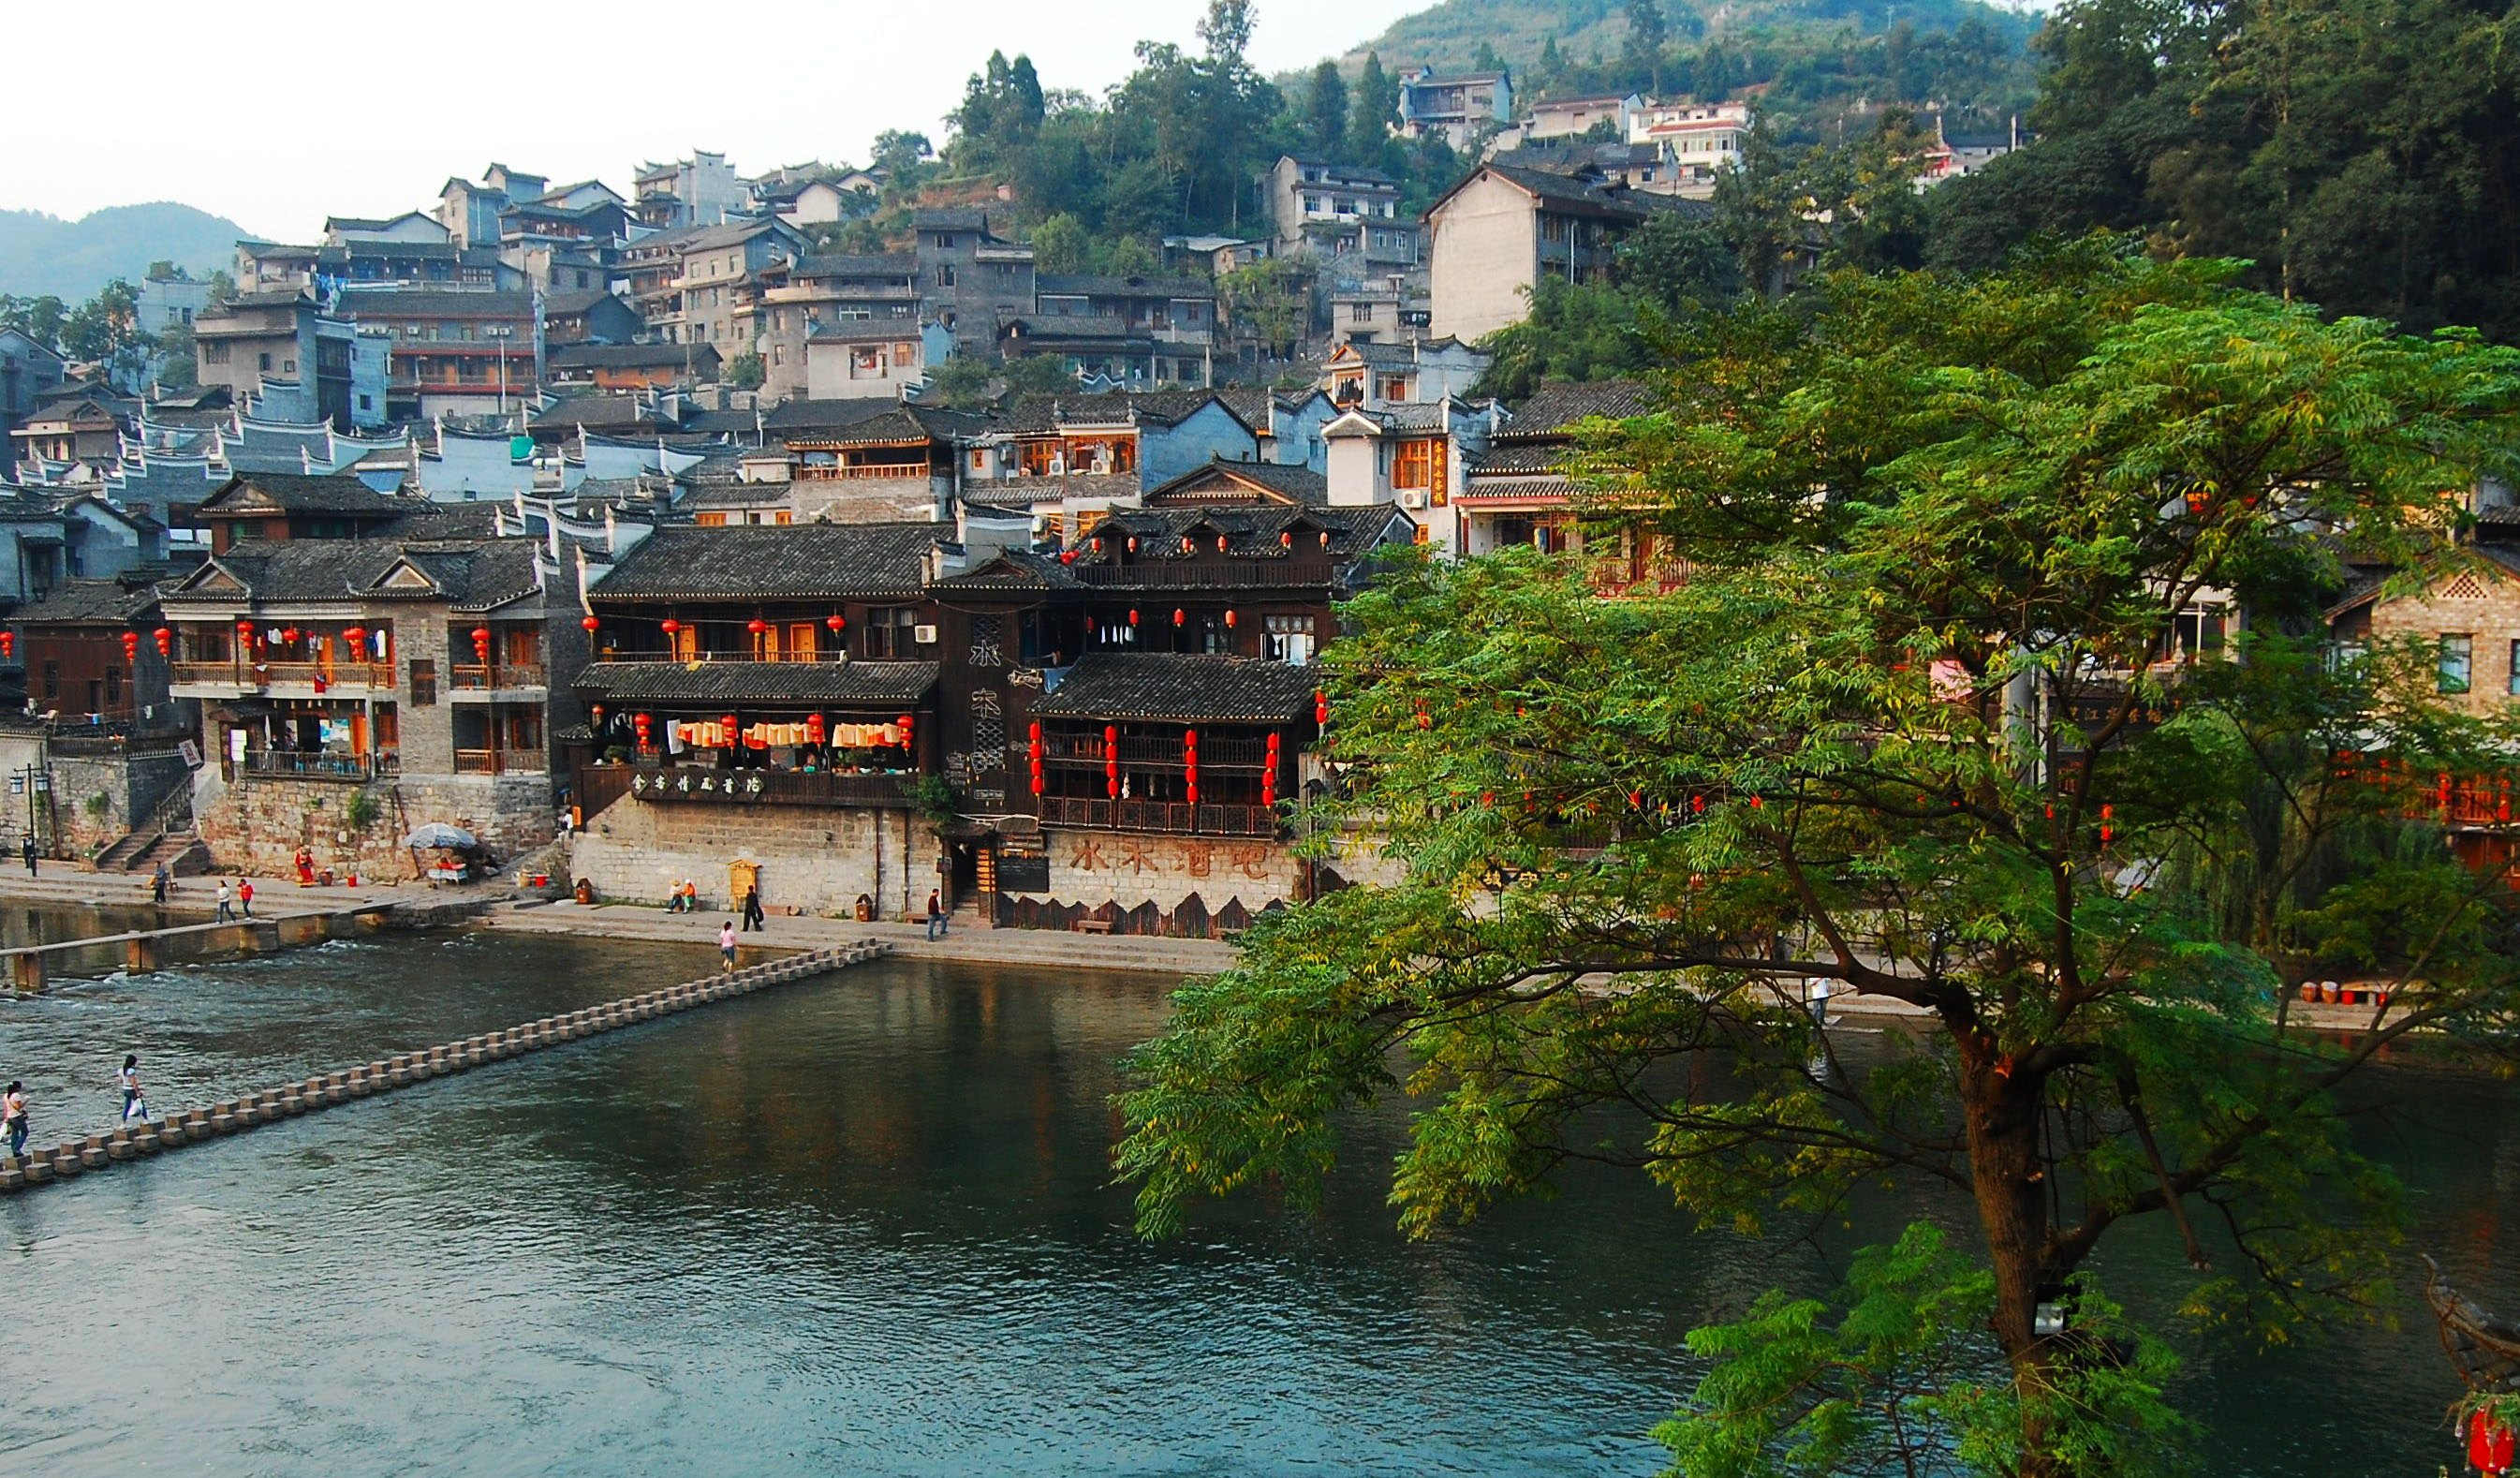 Fenghuang (Phoenix) China  city photo : Phoenix – FengHuang 鳳凰 Ancient City, China | retireediary